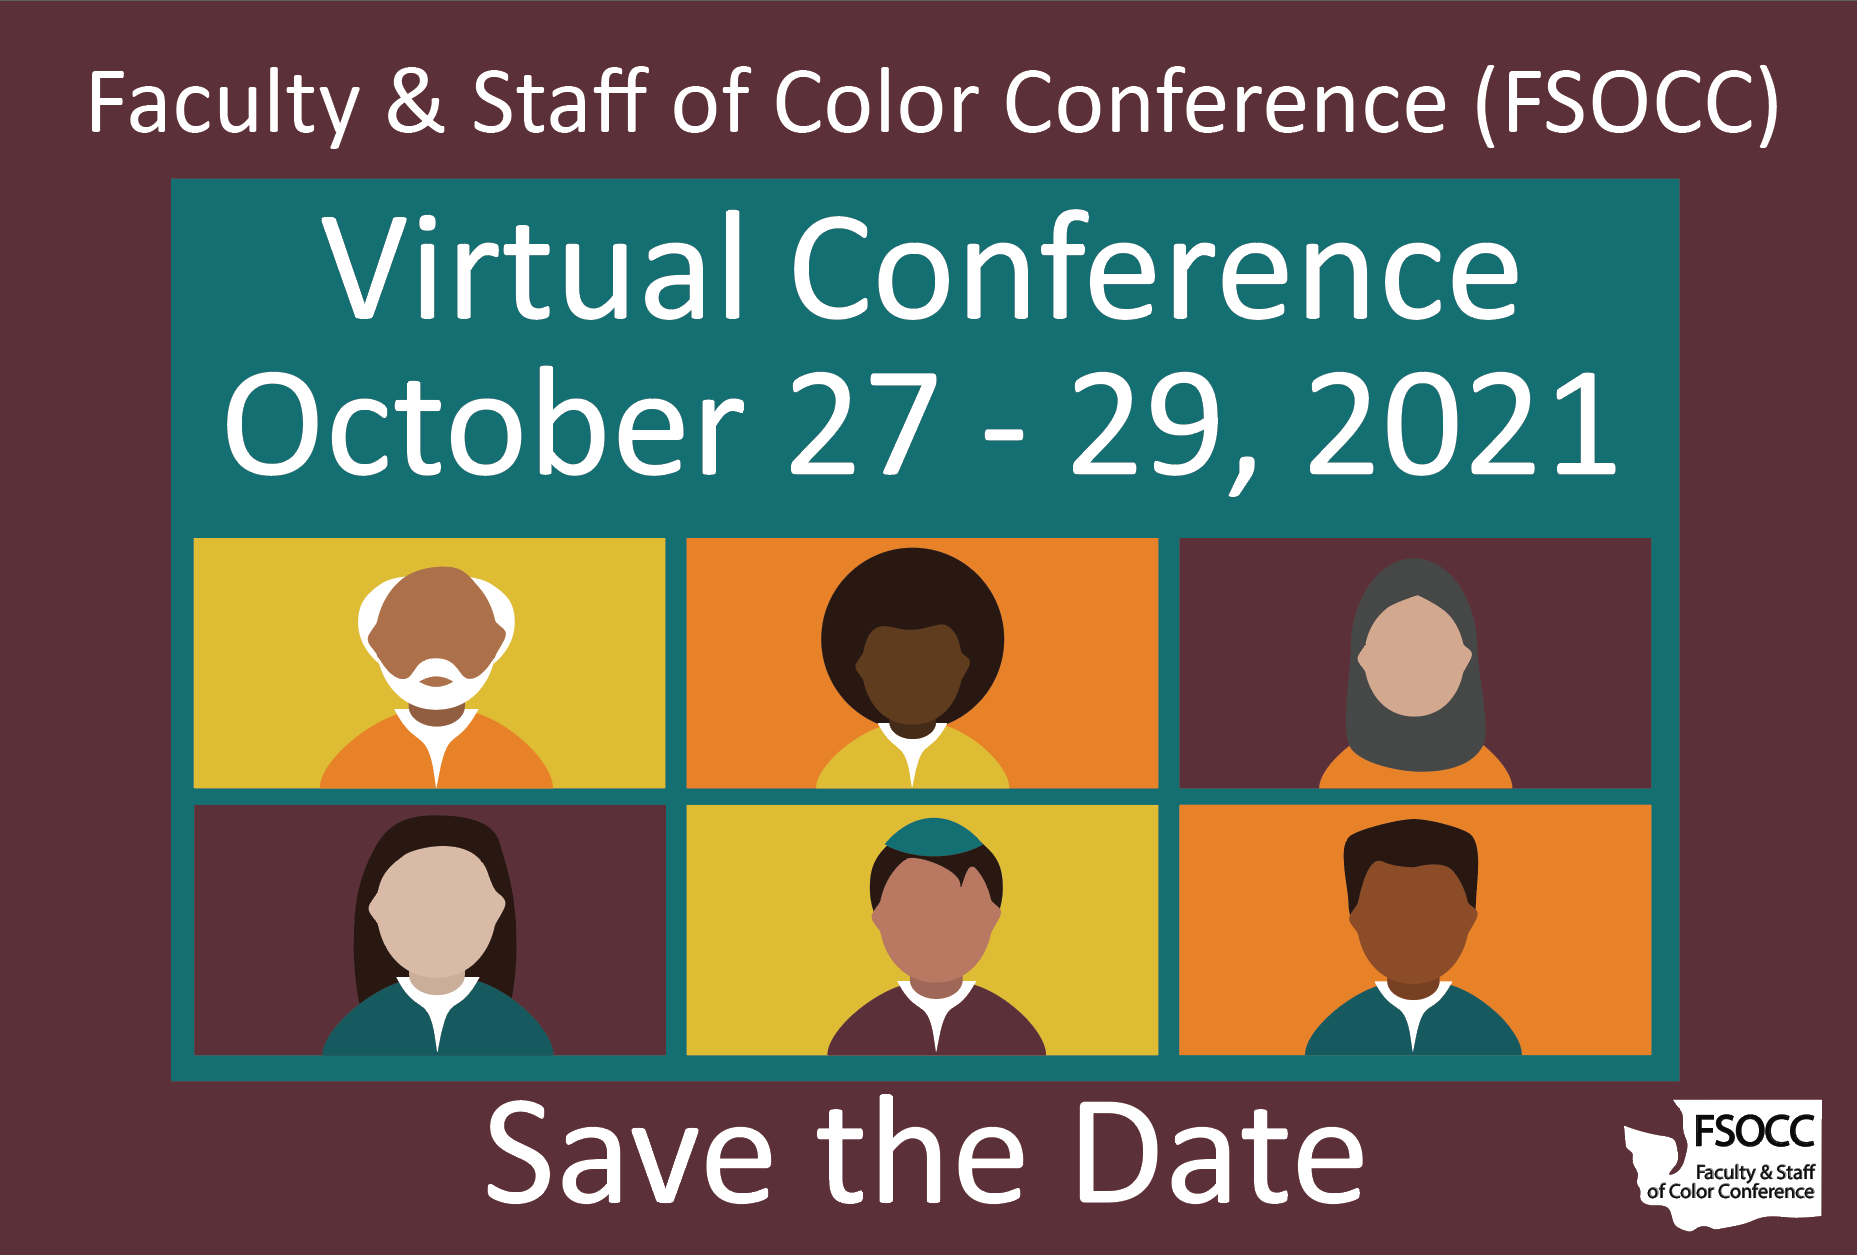 Save the Date for 2021 Factuly & Staff of Color Conference. Virtual Conference October 27 to 29.